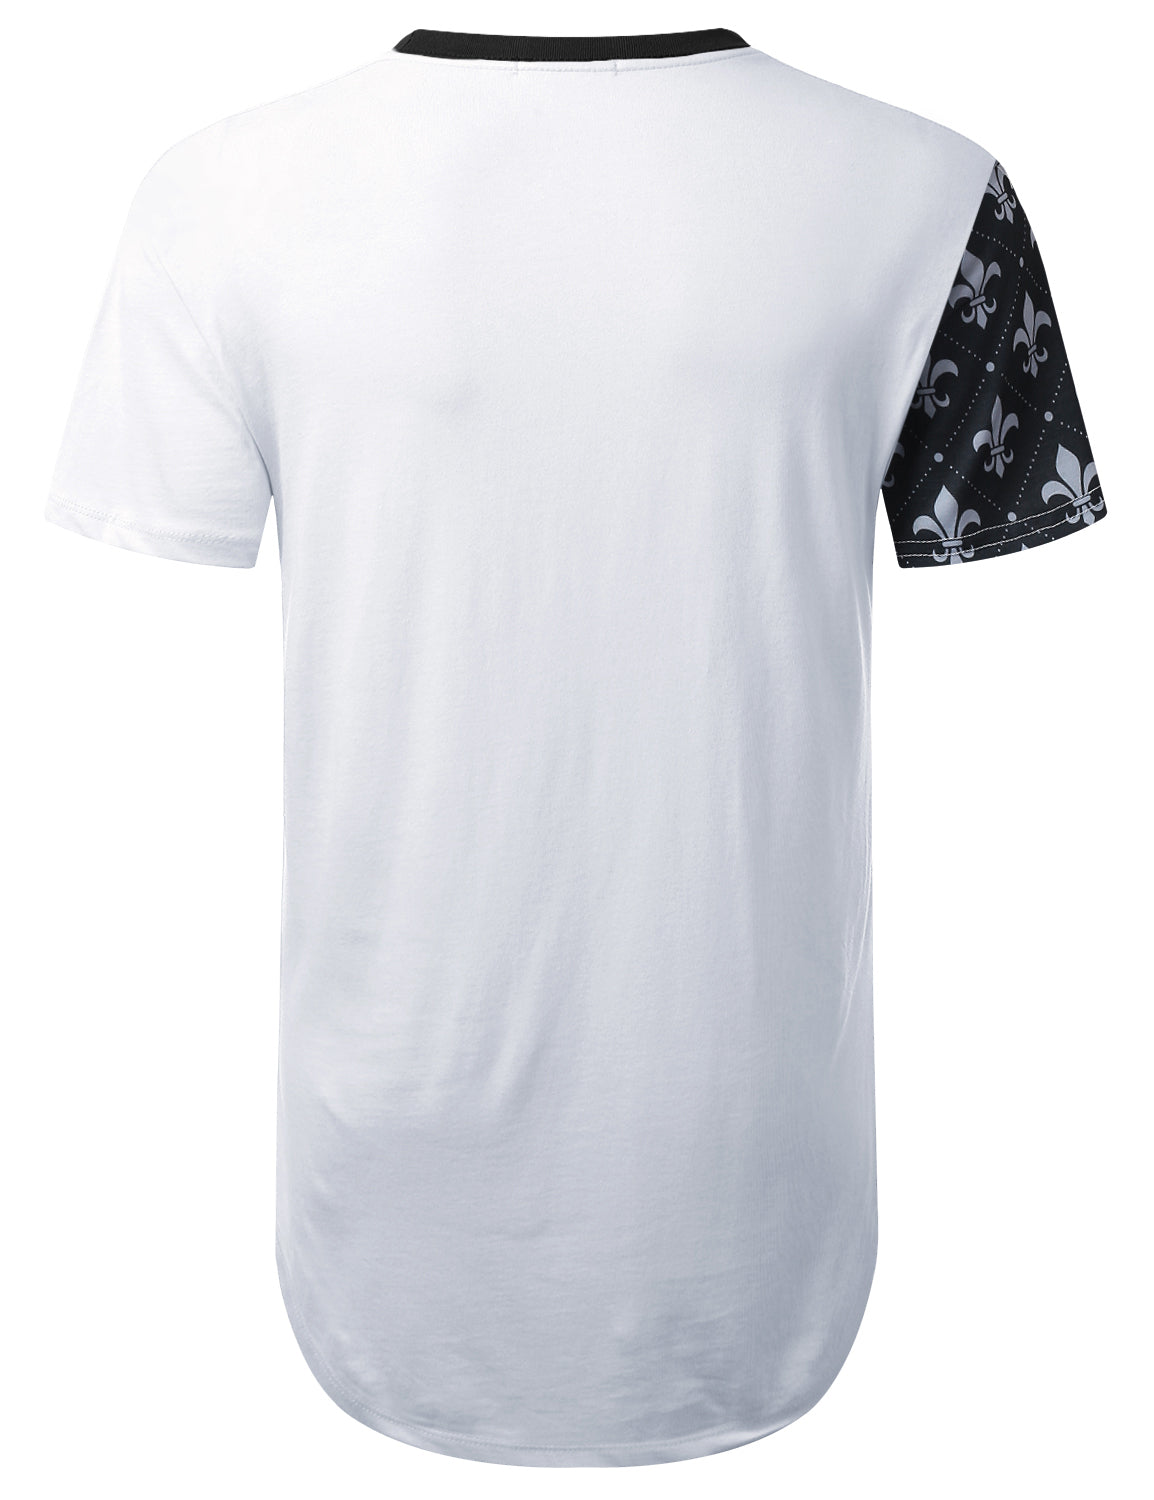 WHITE Pattern Colorblock Longline T-shirt - URBANCREWS